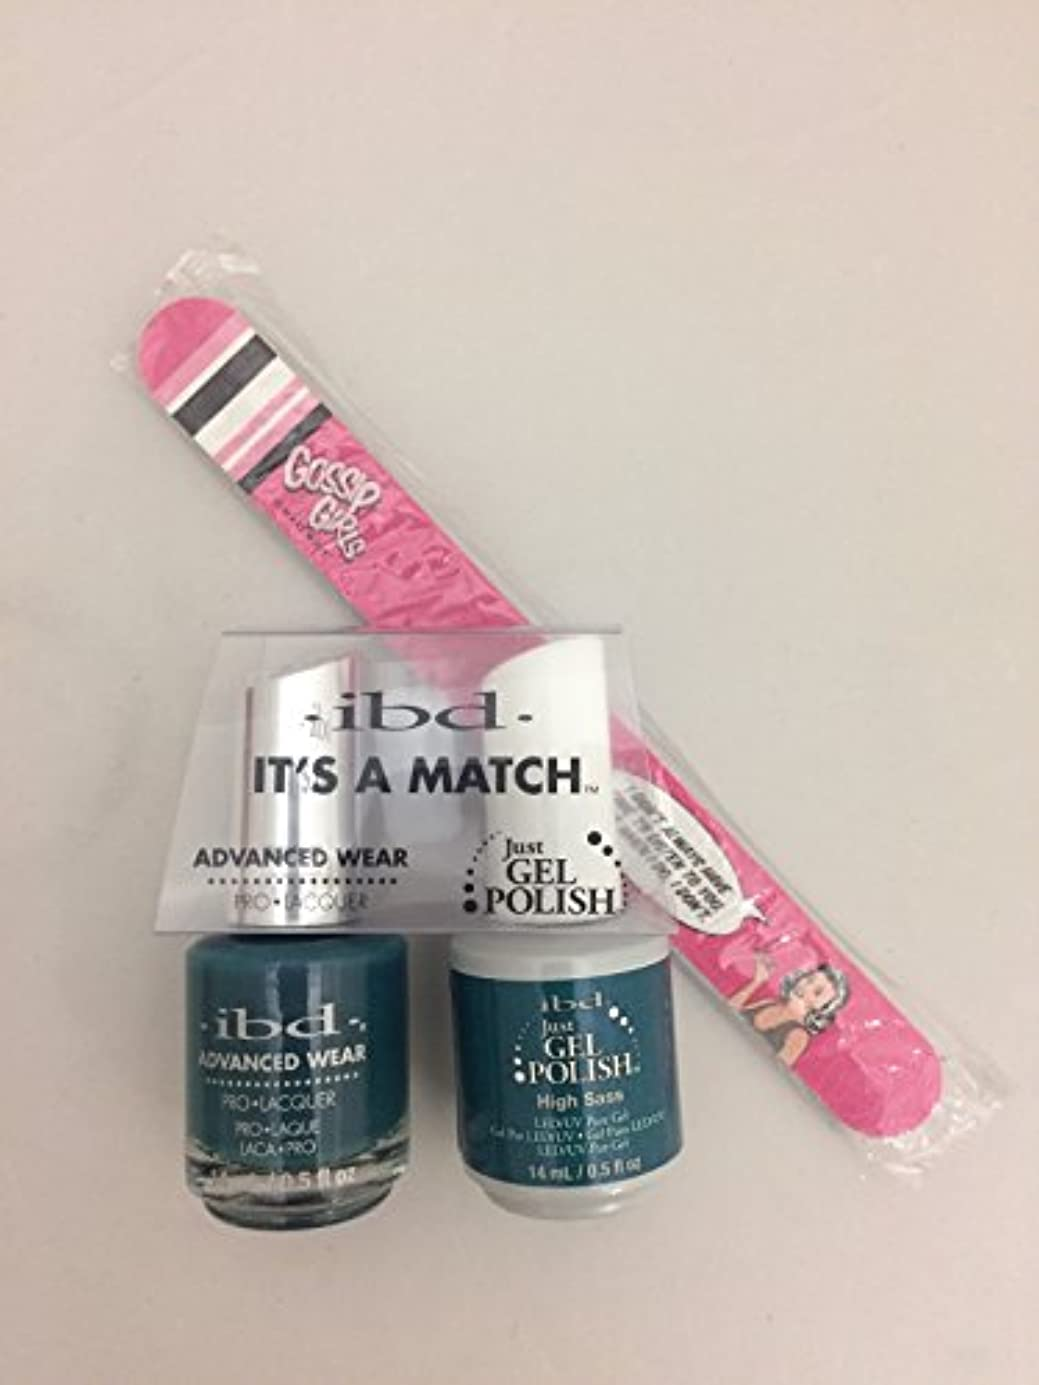 レビュアー分泌するドナーibd - It's A Match -Duo Pack- Imperial Affairs Collection - High Sass - 14 mL / 0.5 oz Each